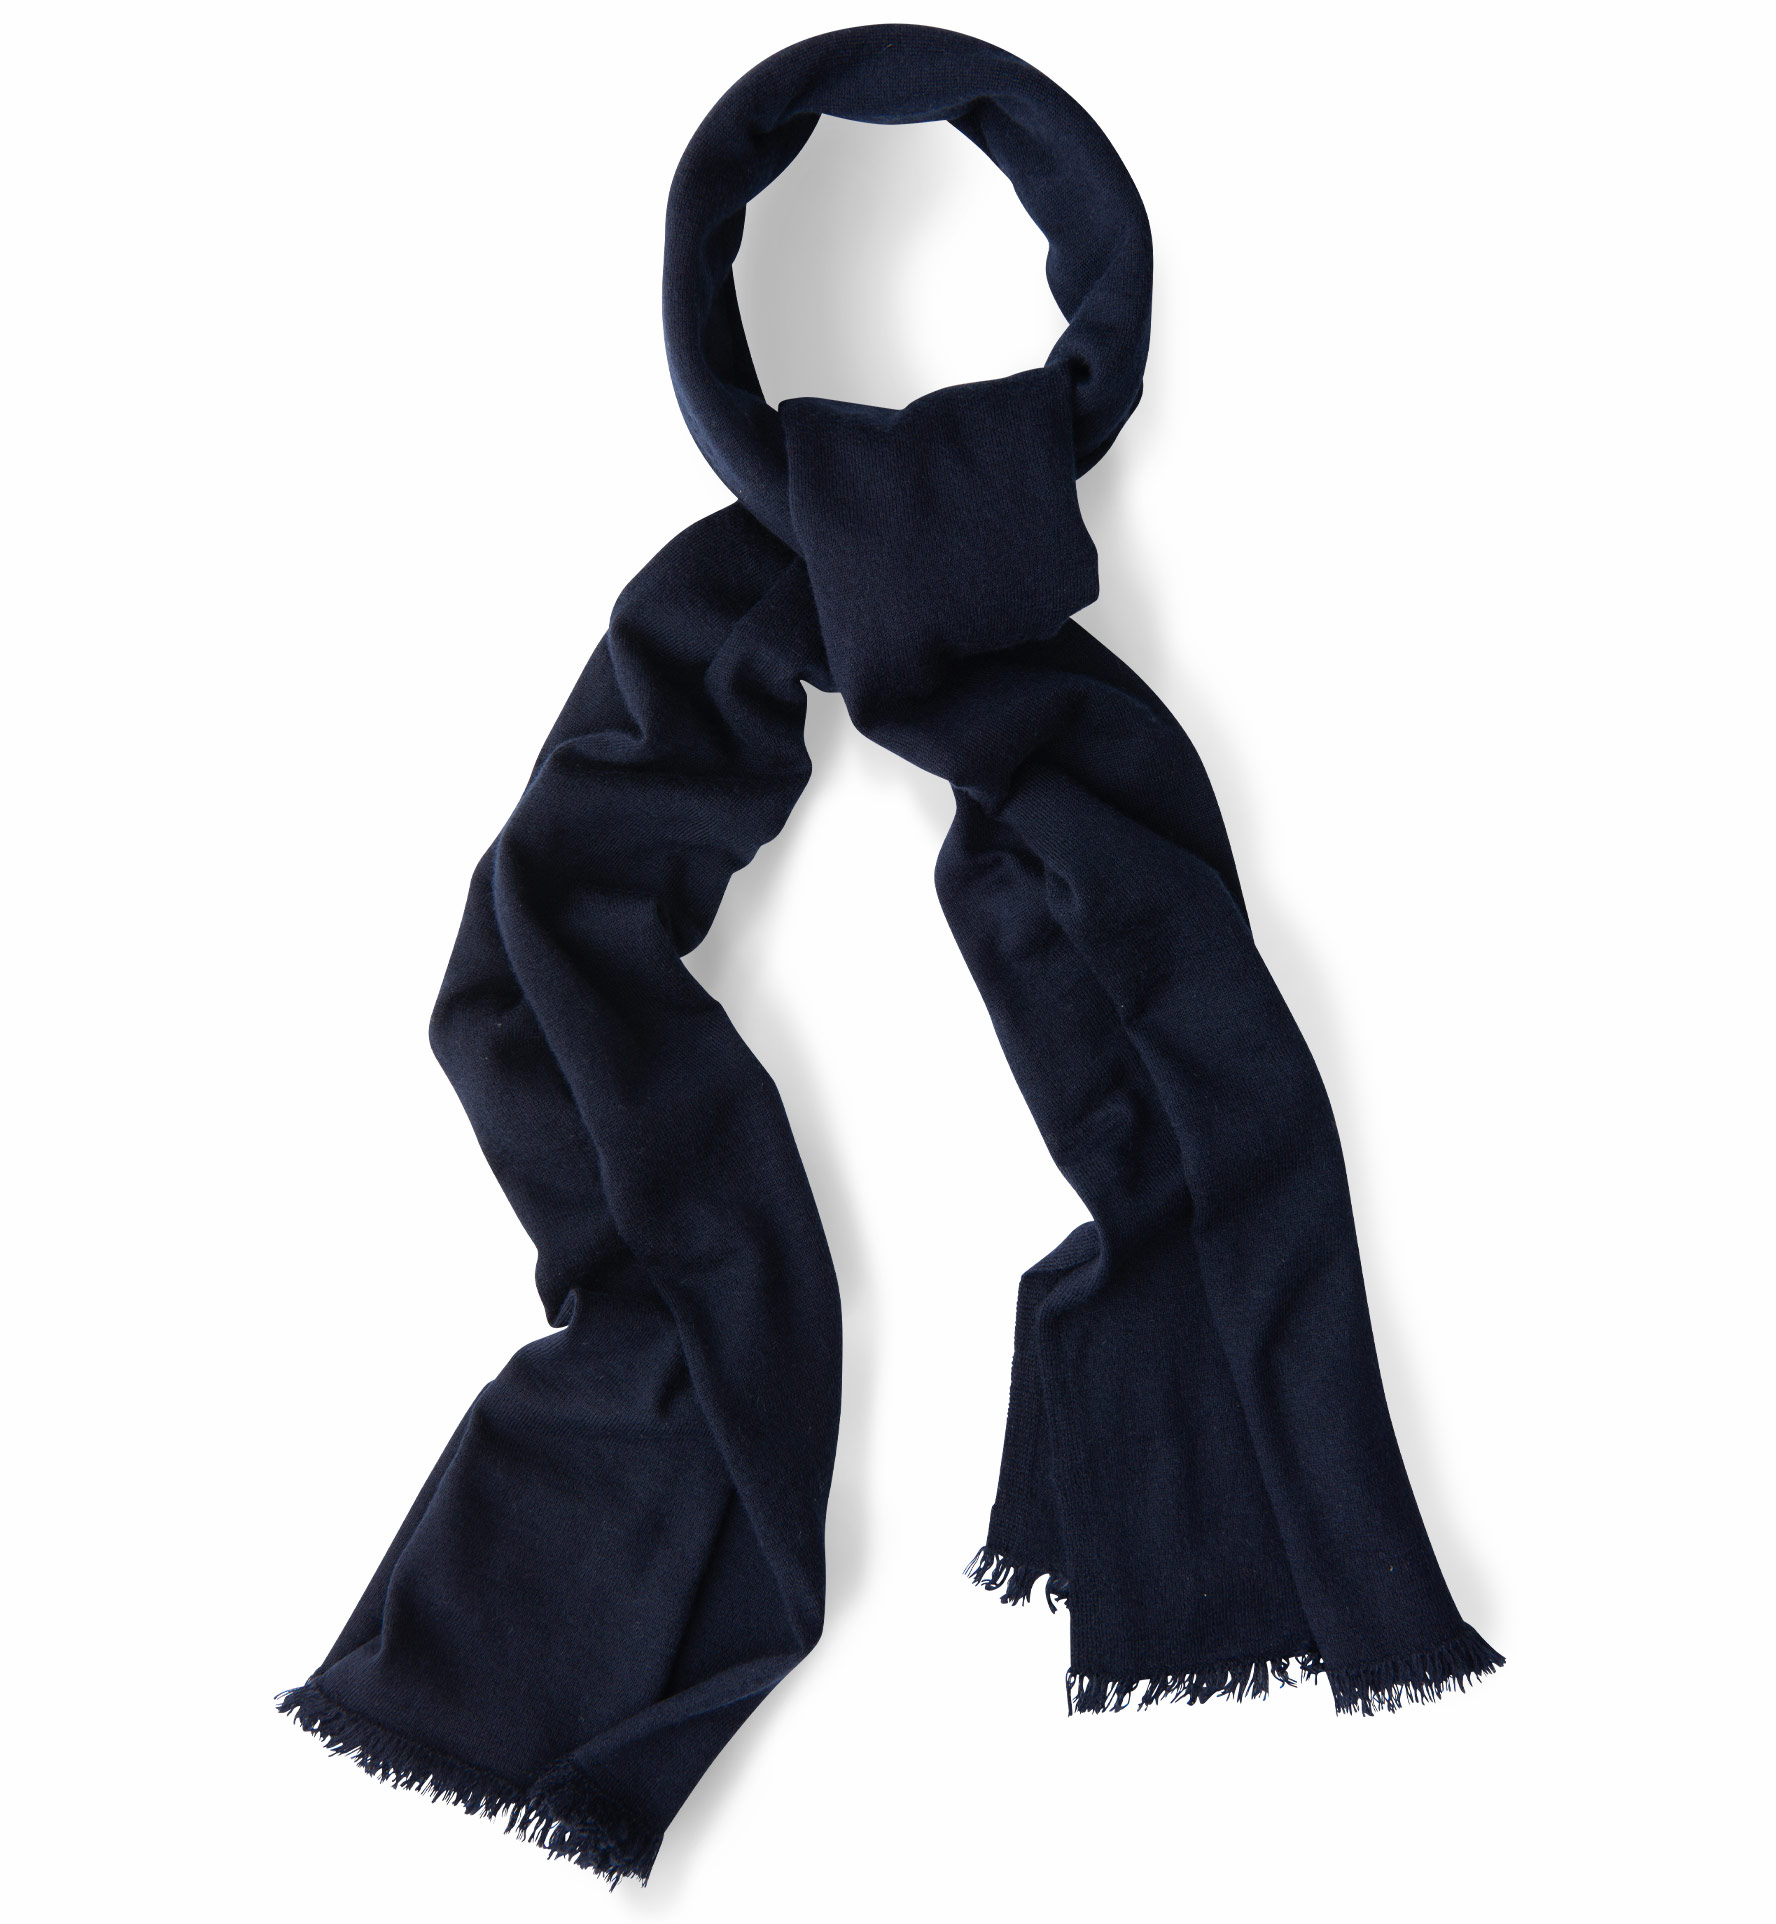 Zoom Image of Navy Italian Cashmere Knit Scarf